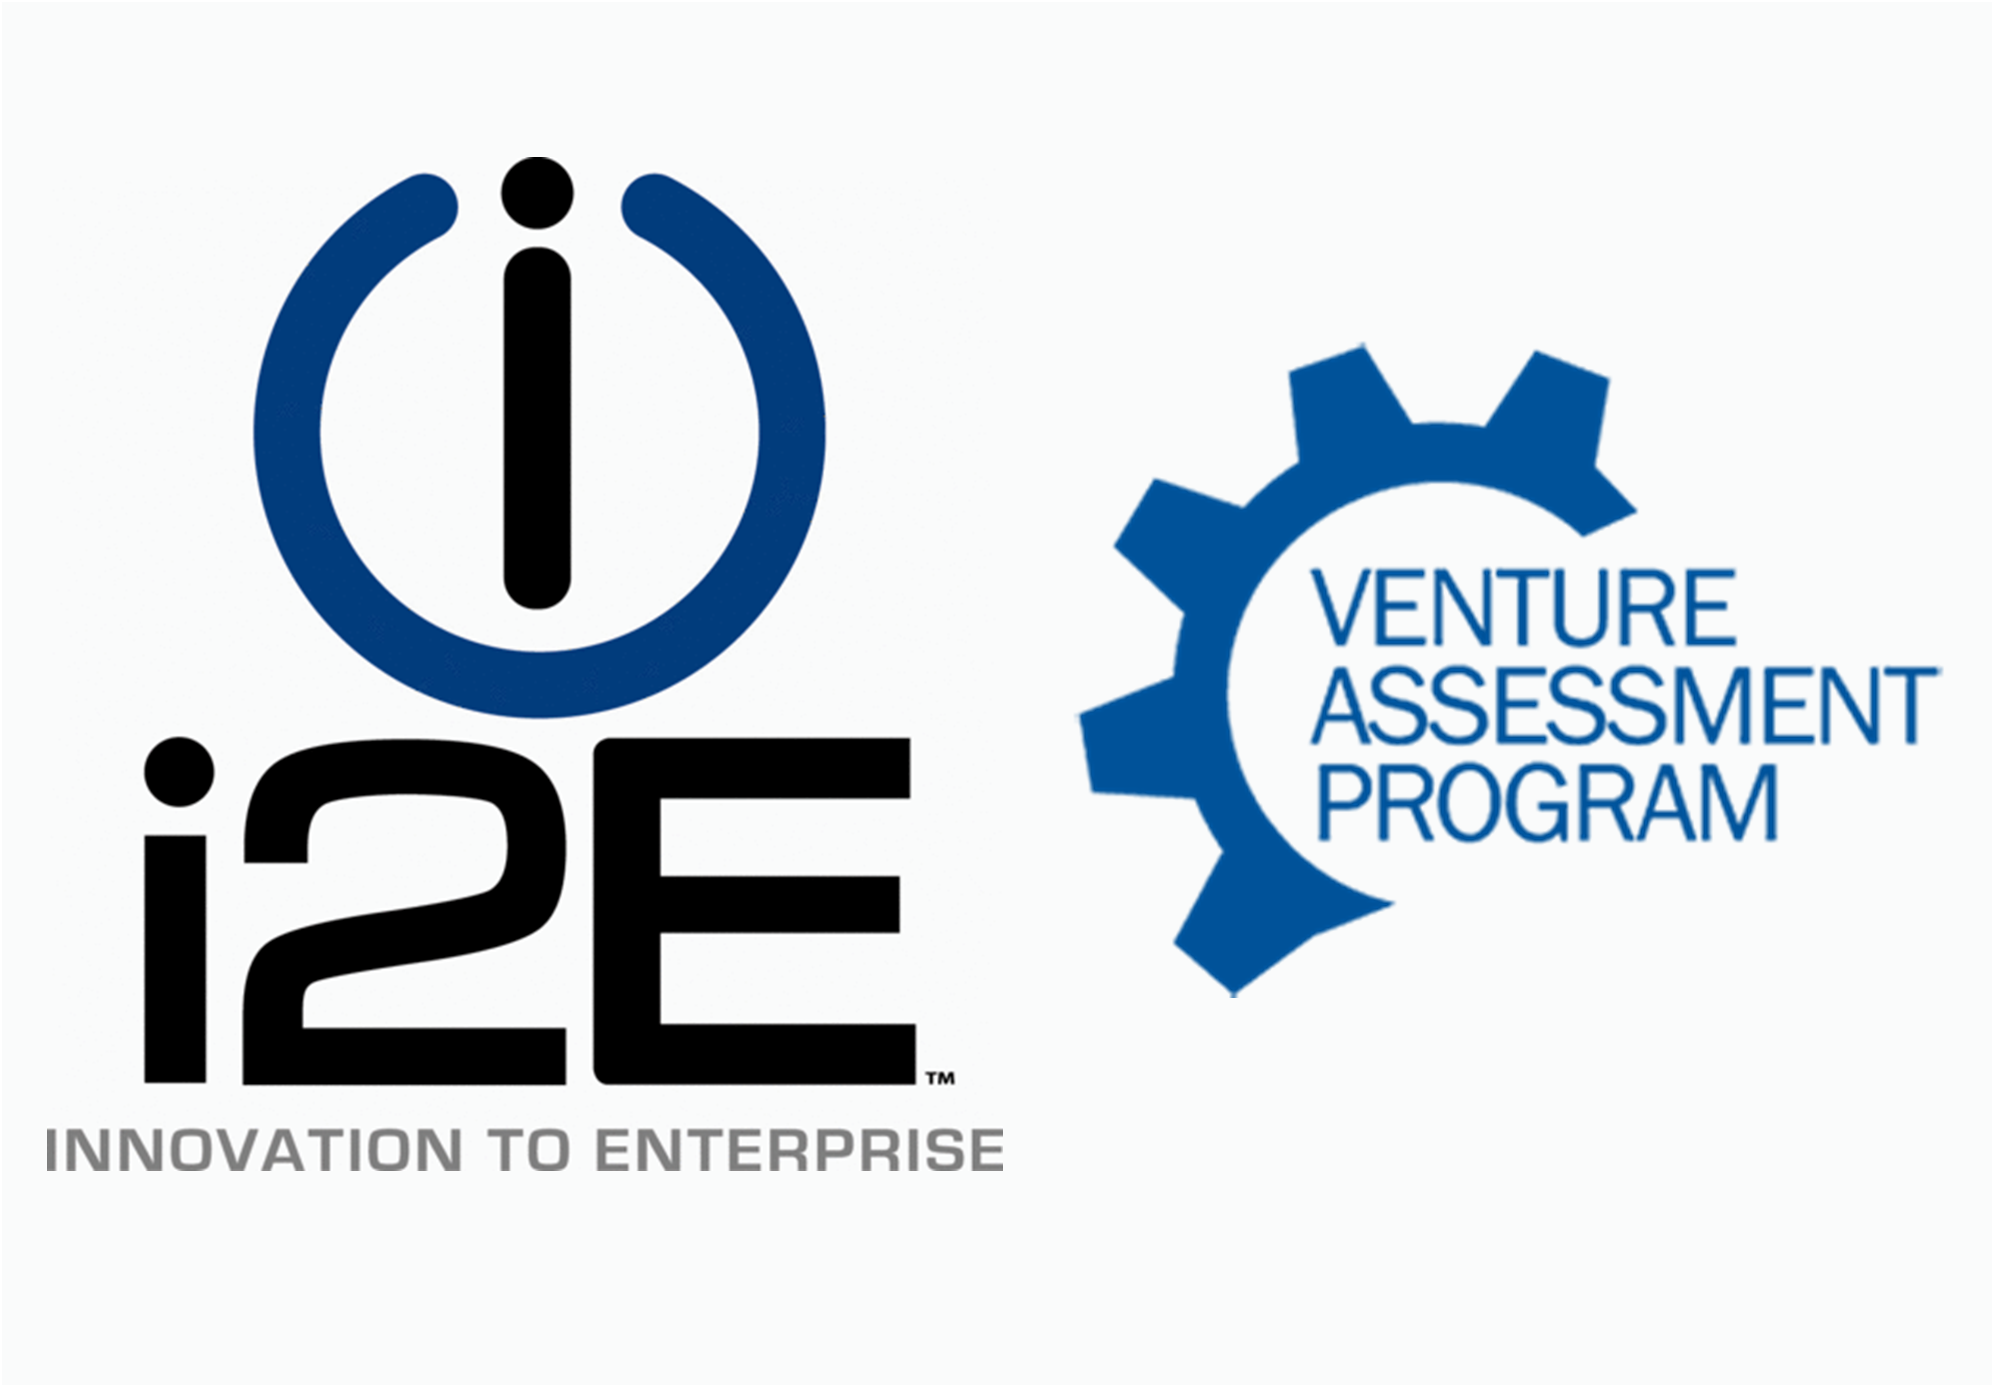 i2E Venture Assessment Program